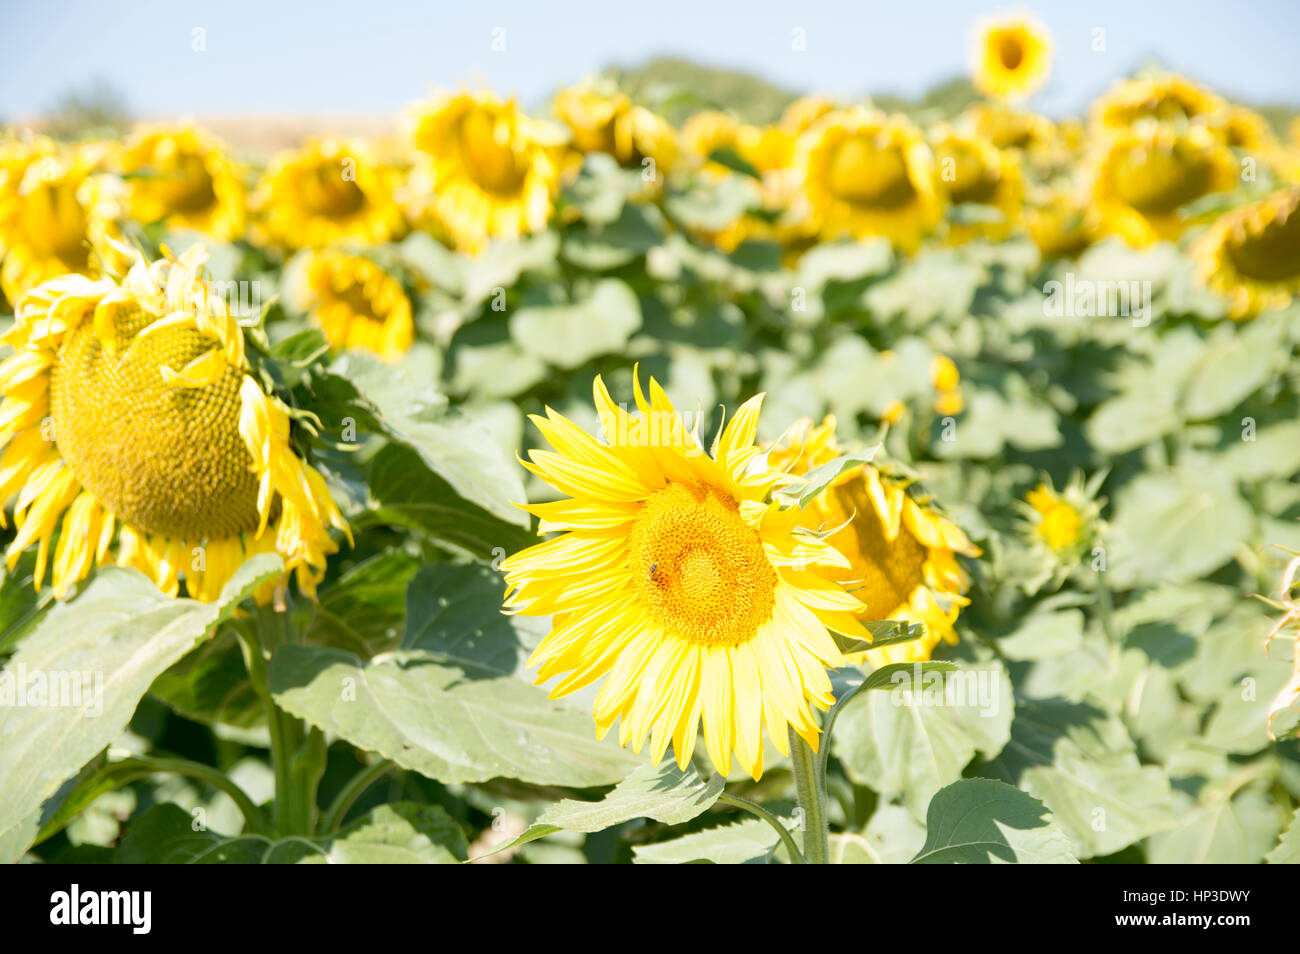 Sunflowers in Road to Santiago - Stock Image